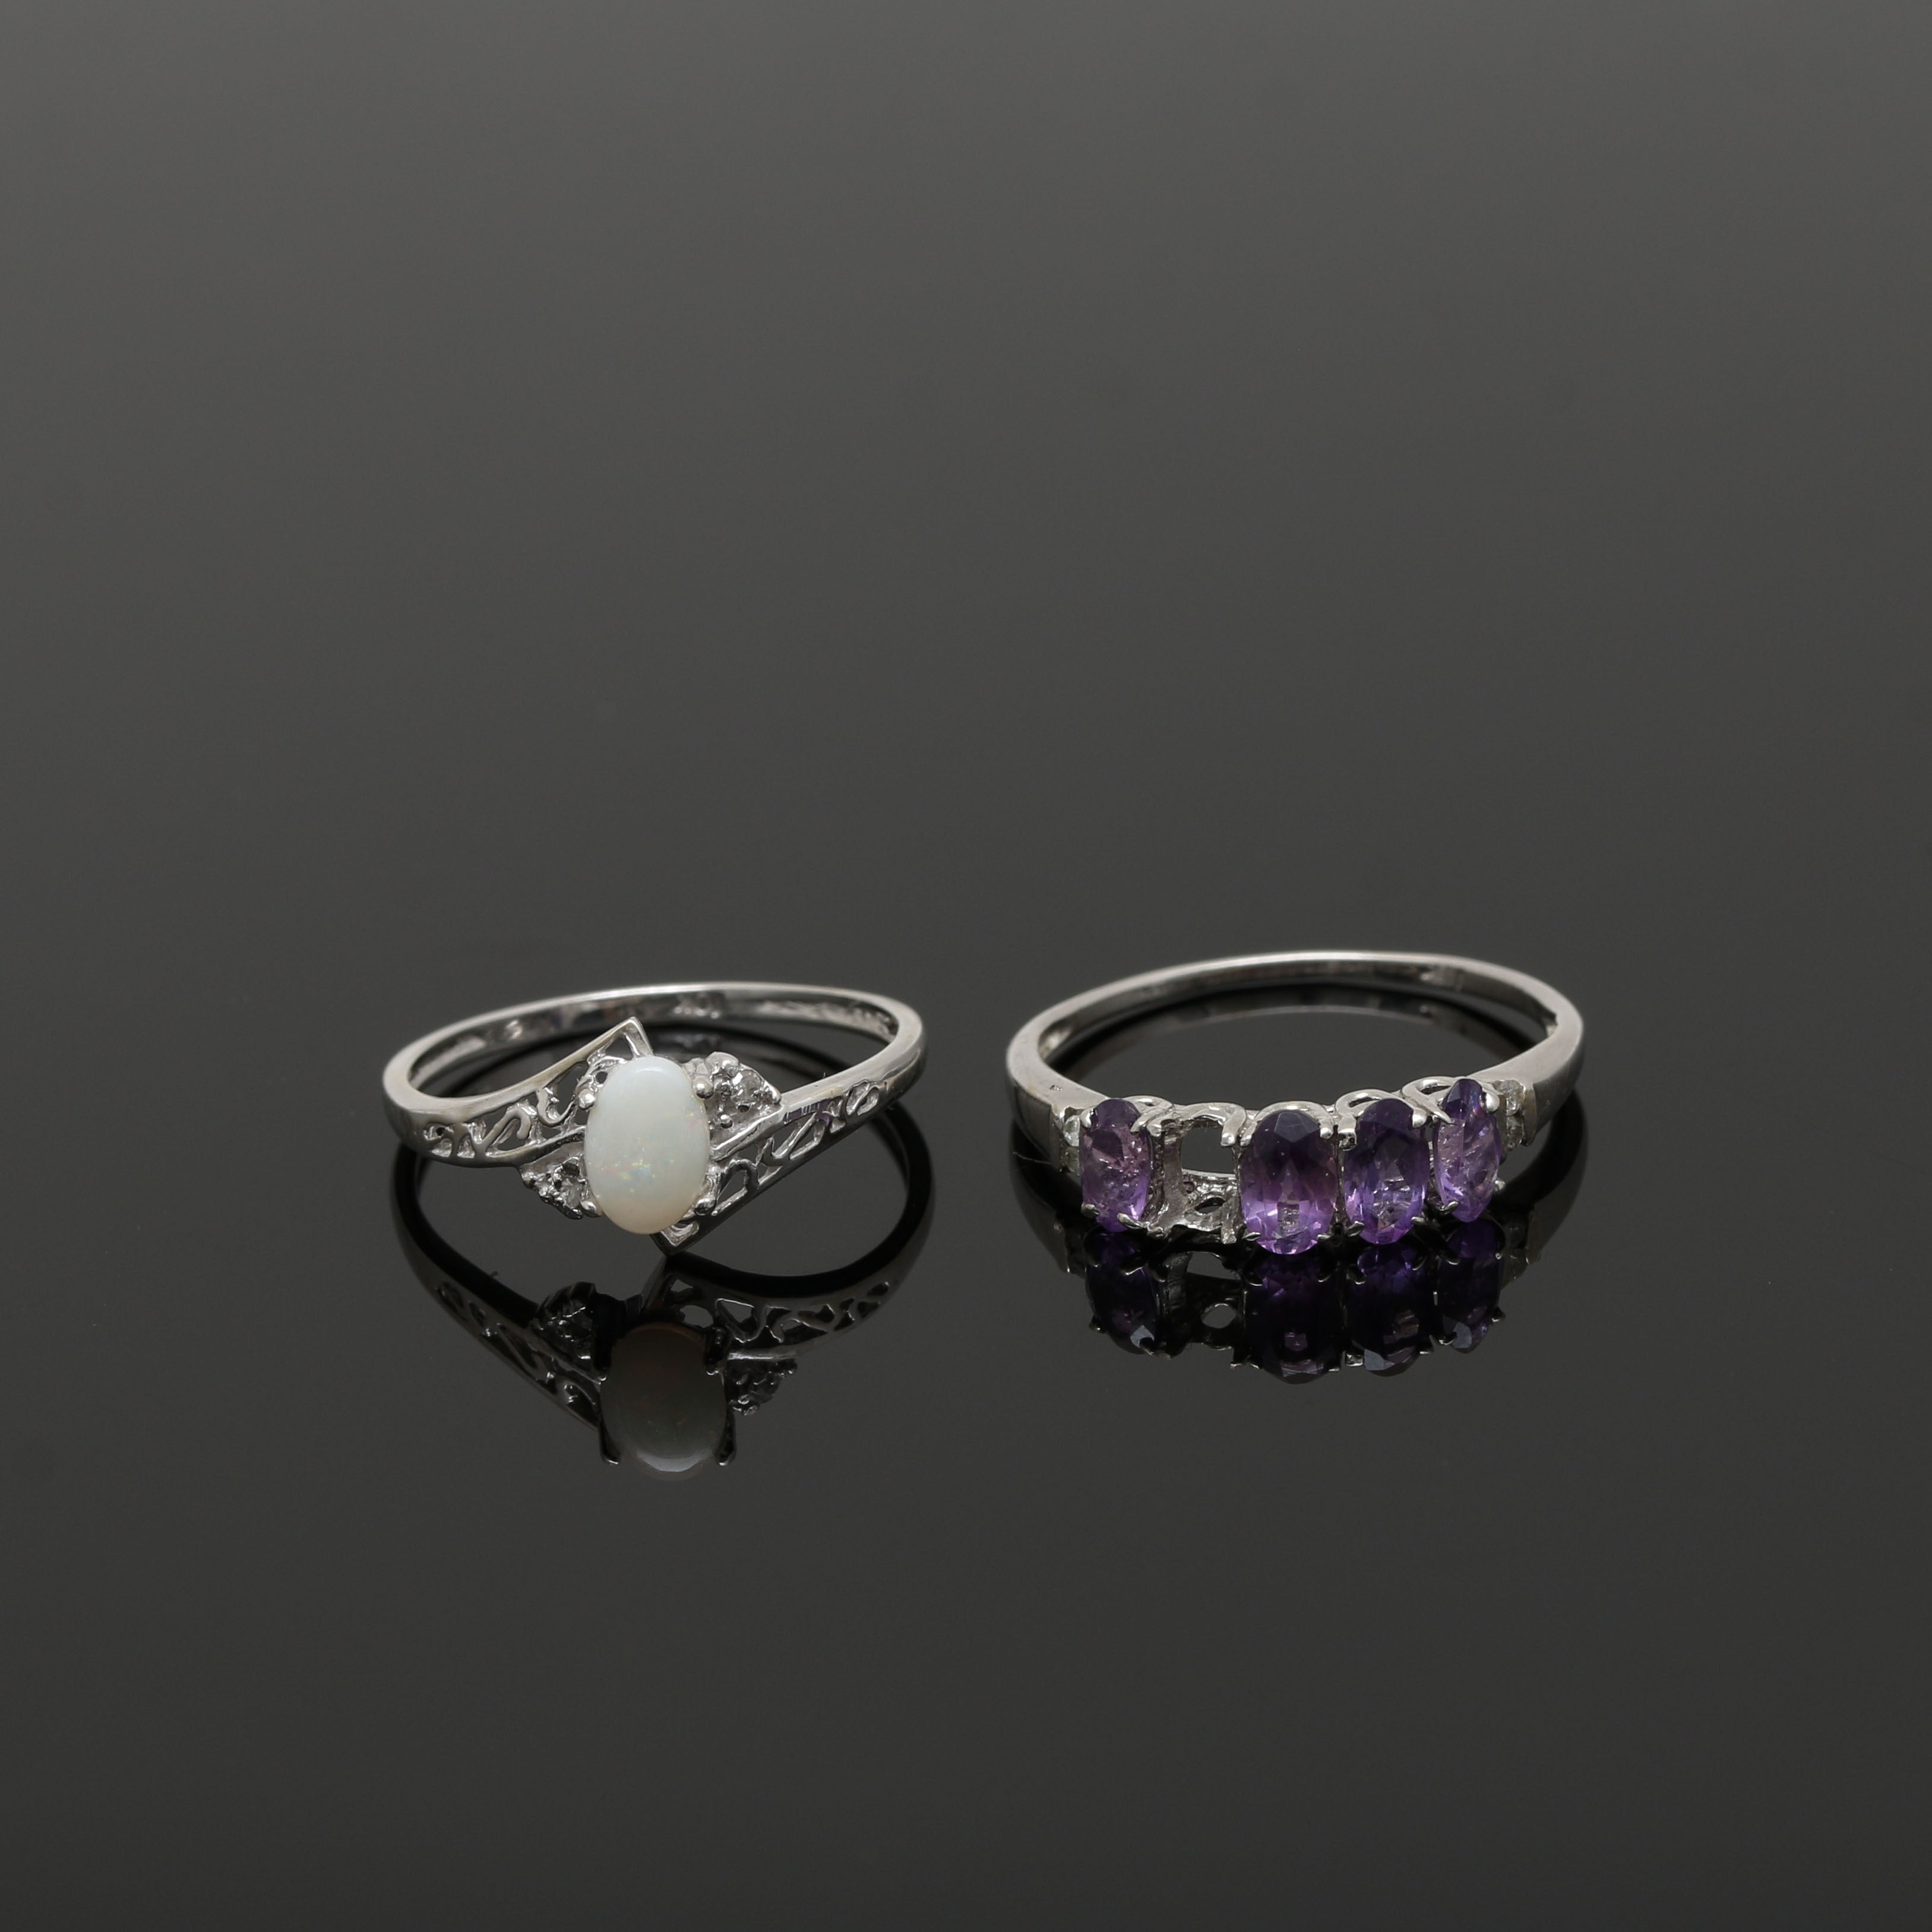 10K White Gold Diamond Rings With Amethyst and Opal